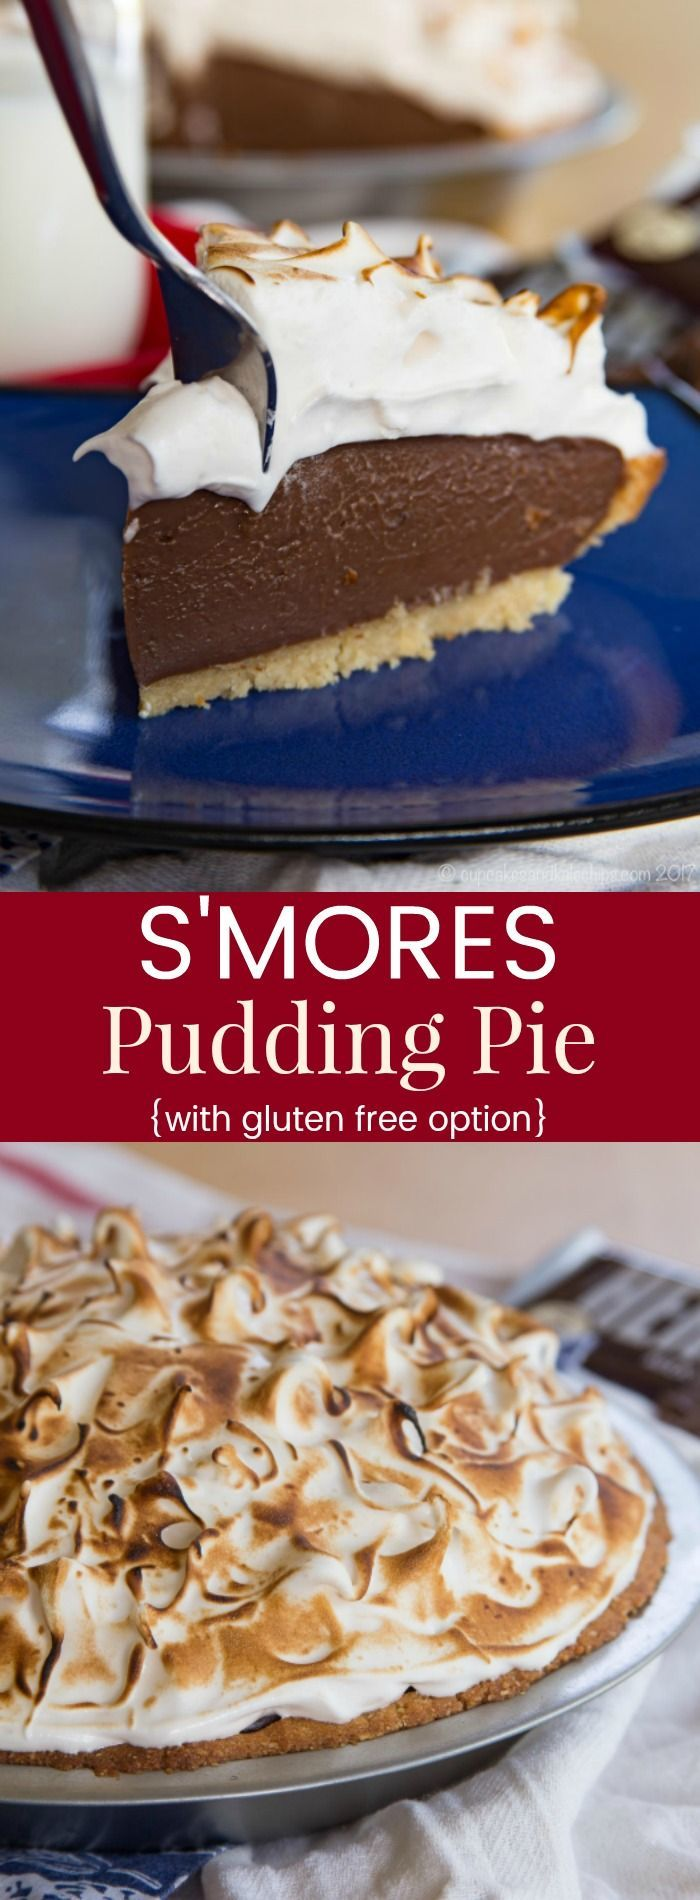 S'Mores Pudding Pie - milk chocolate pudding pie with marshmallow meringue combines two classic dessert recipes. Use a homemade or storebought graham cracker crust, or a gluten-free almond meal crust.